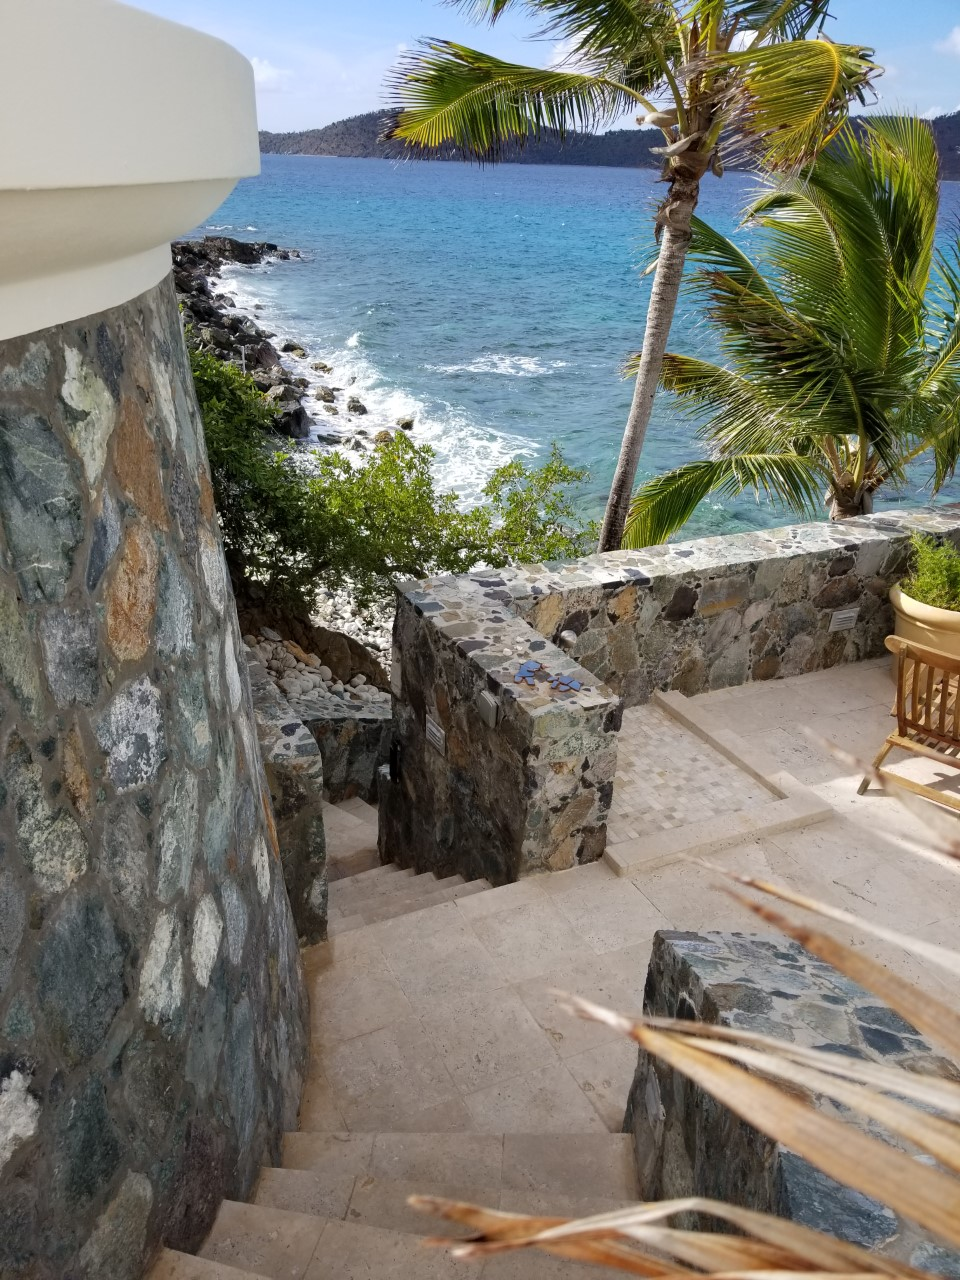 Stairs to lower deck and ocean